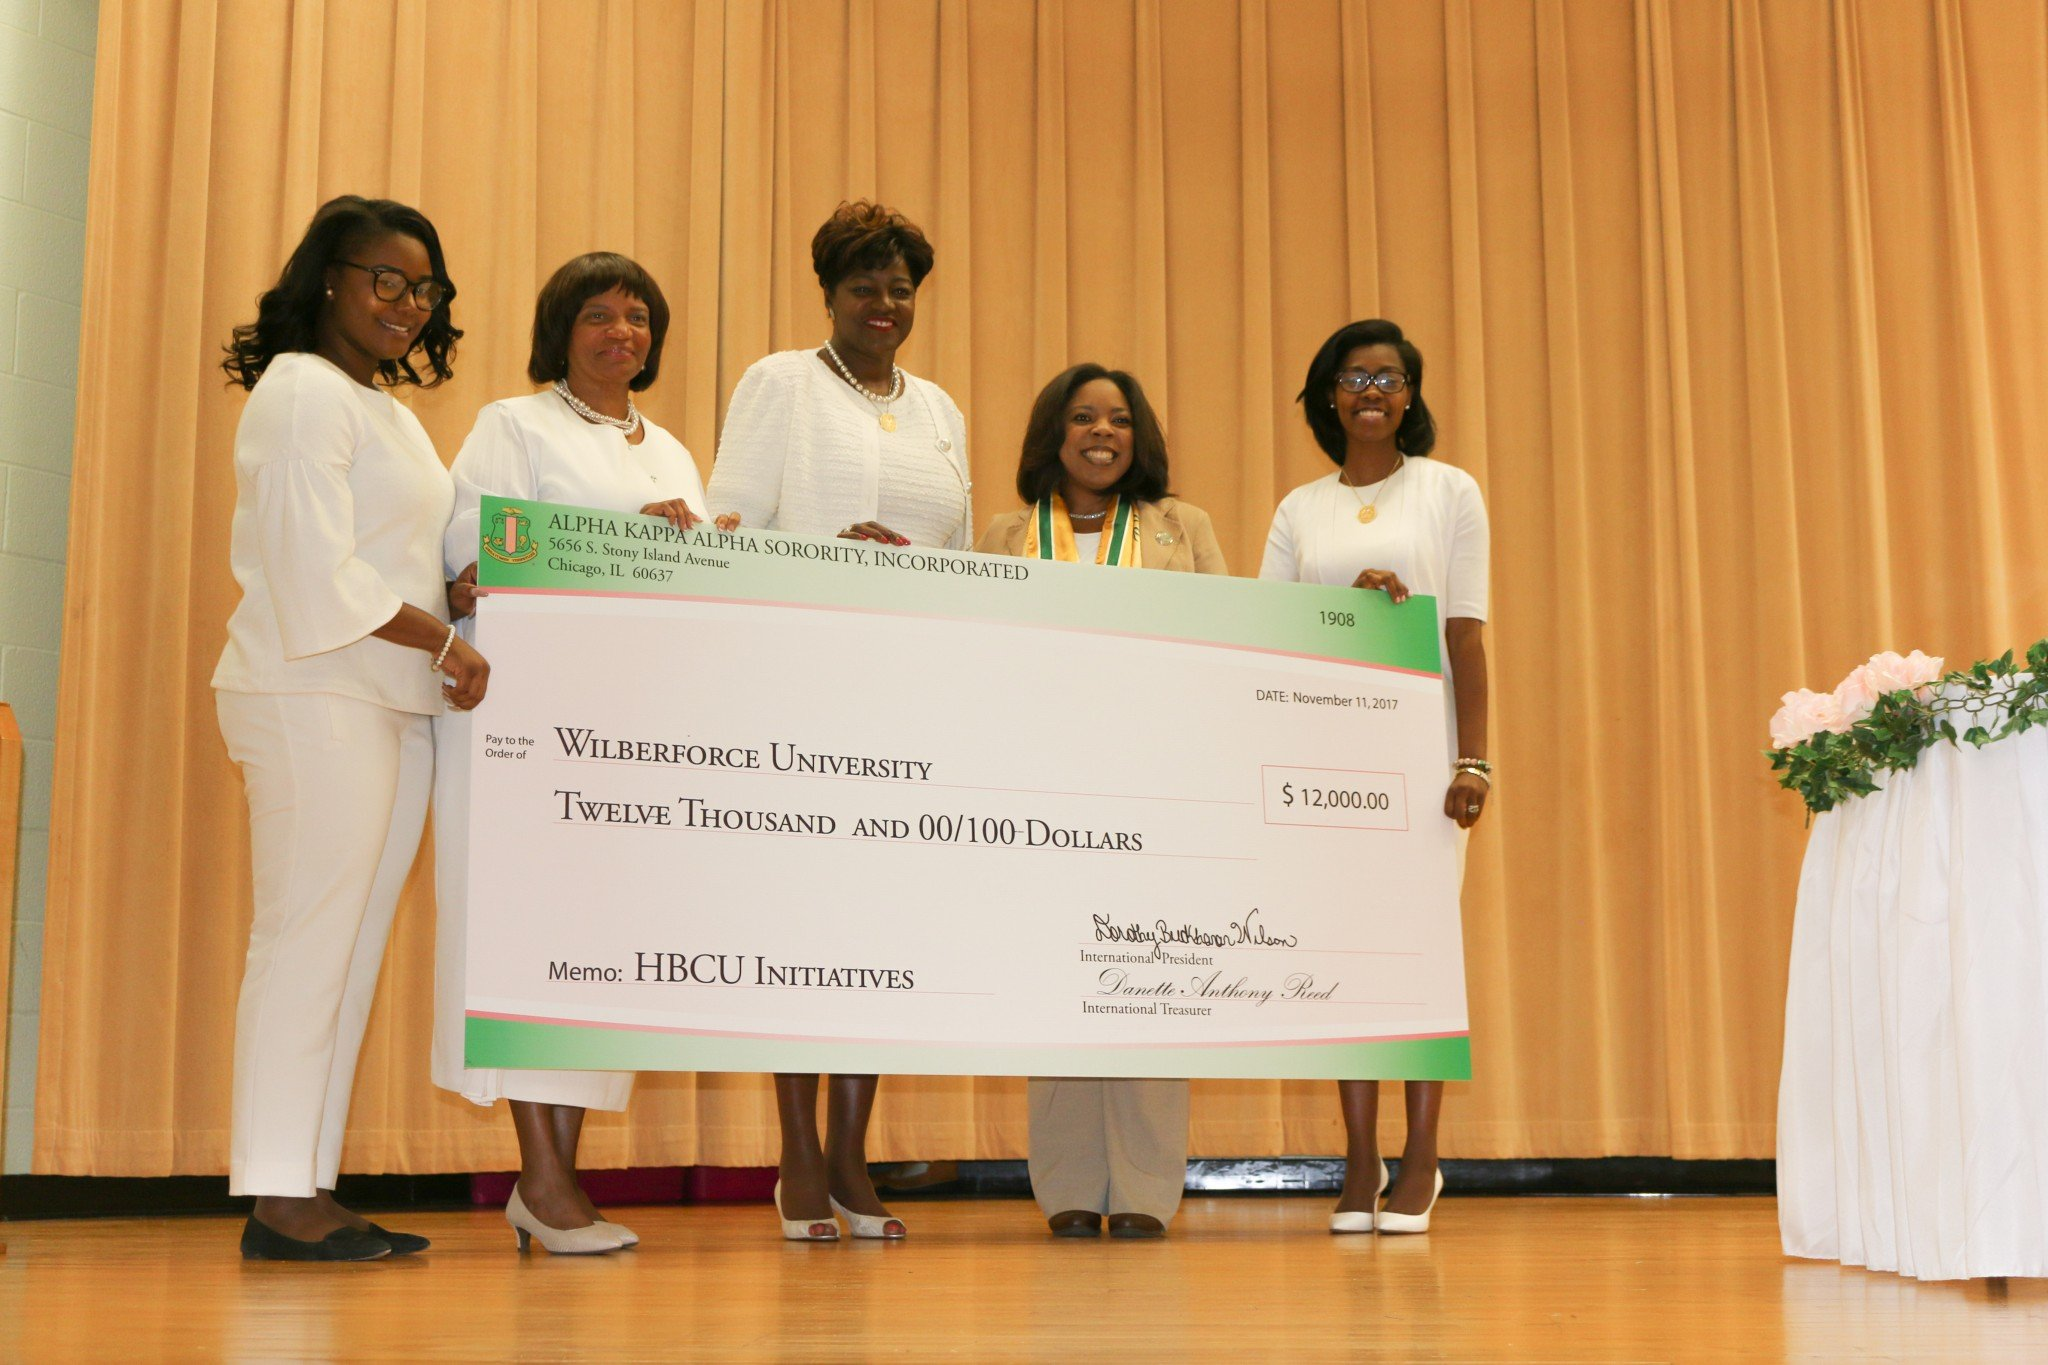 Women on stage hold large check